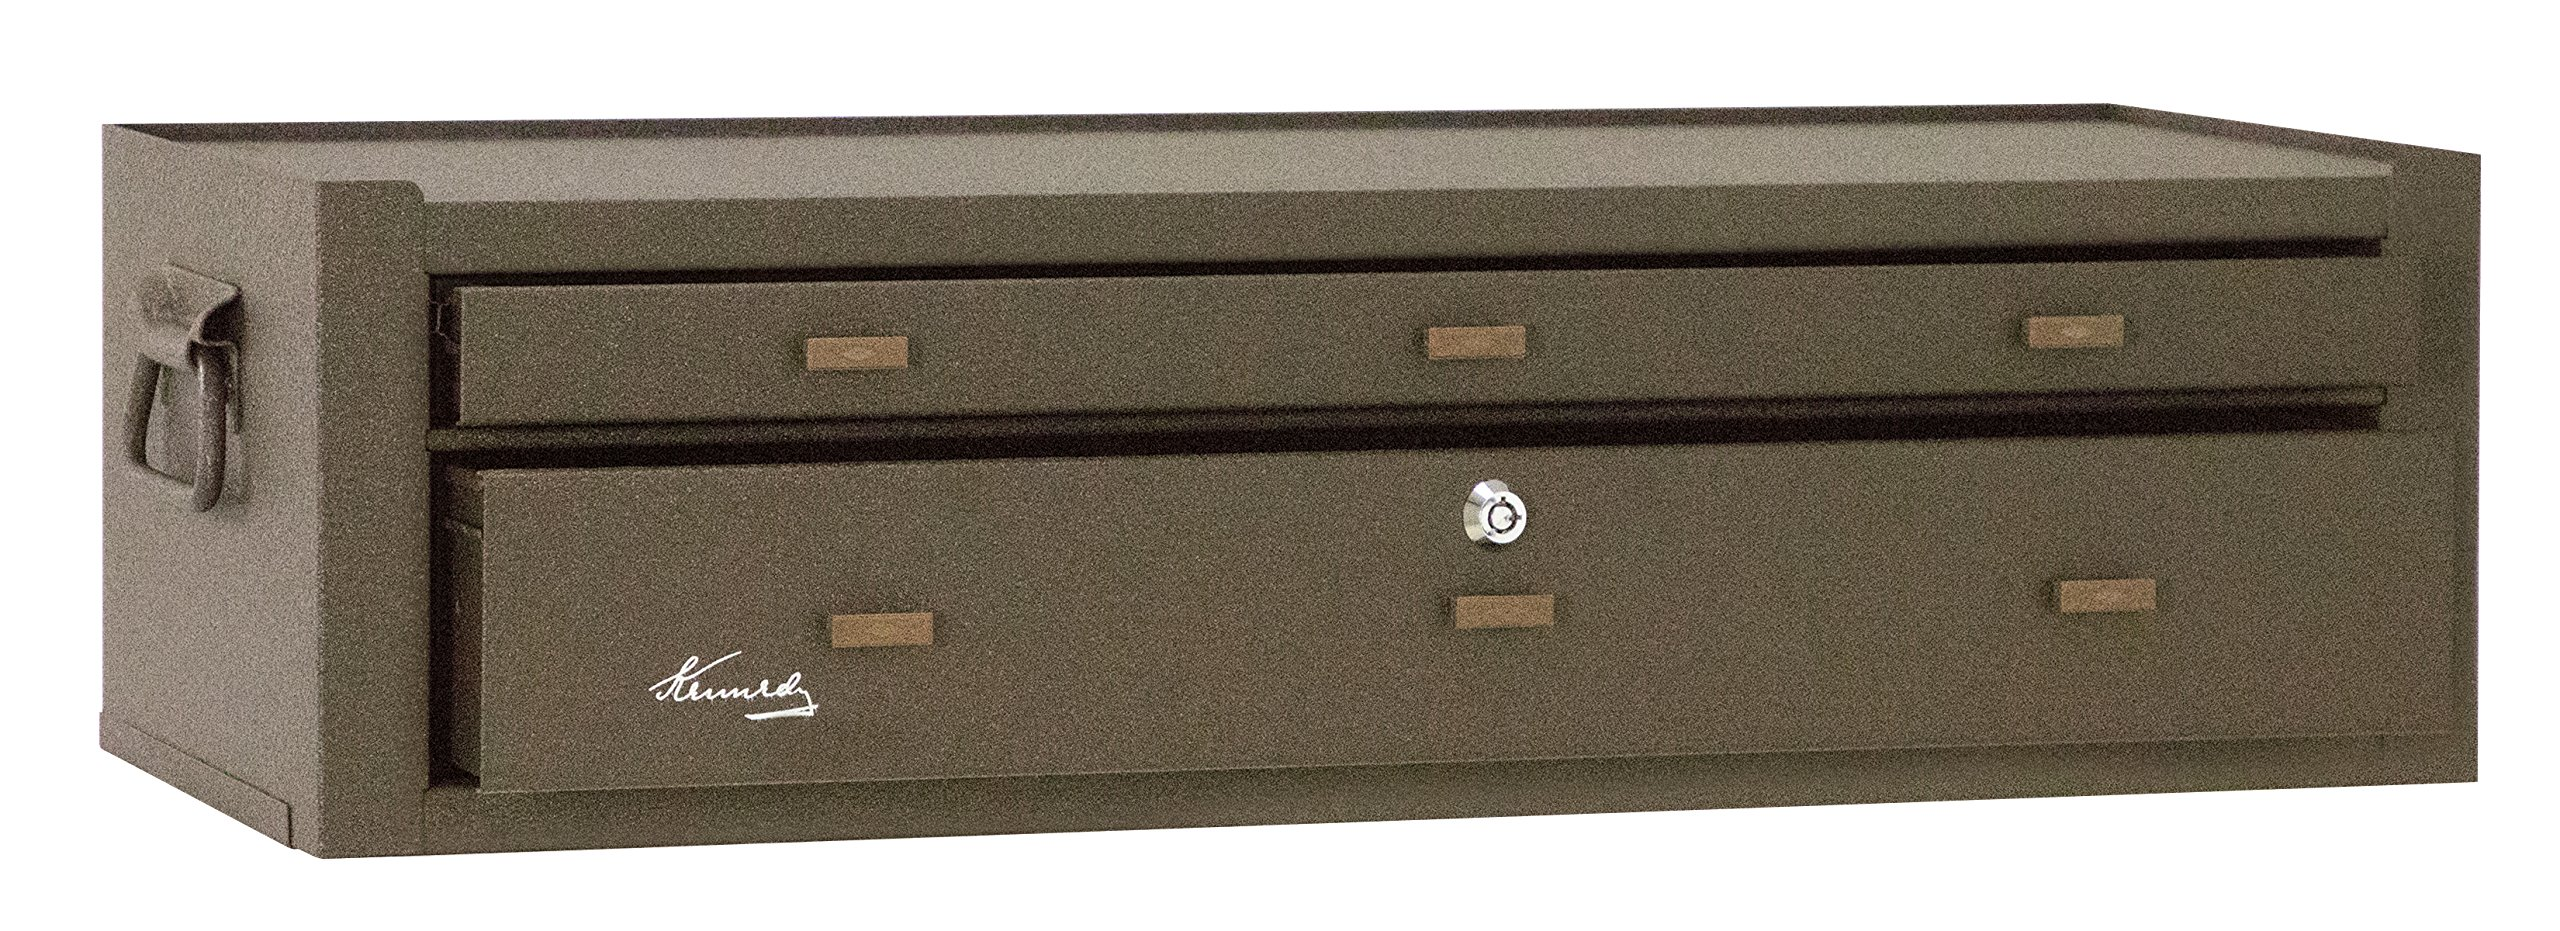 Kennedy Manufacturing MC28B 2-Drawer Machinist's Steel Tool Storage Chest Base with Friction Slides, 28'', Brown Wrinkle